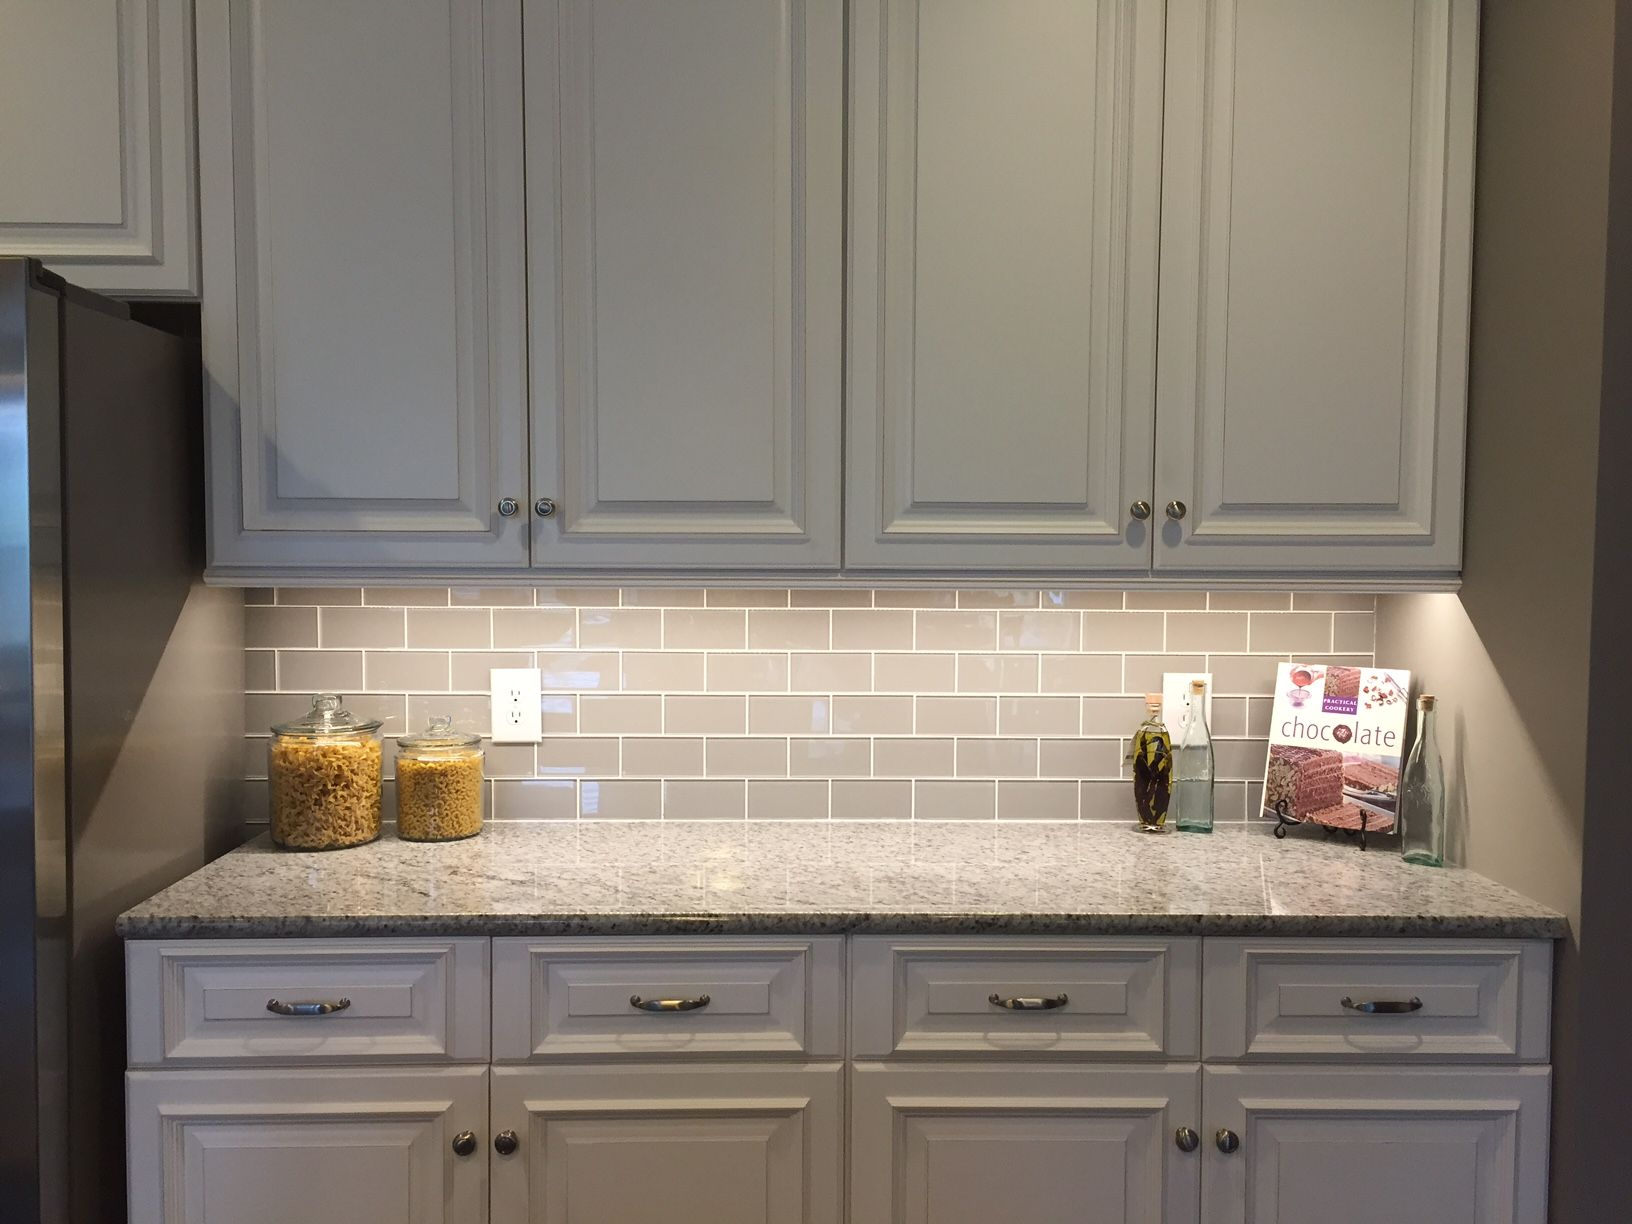 kitchen backsplash tile ideas subway glass smoke glass subway tile backsplashes 9067